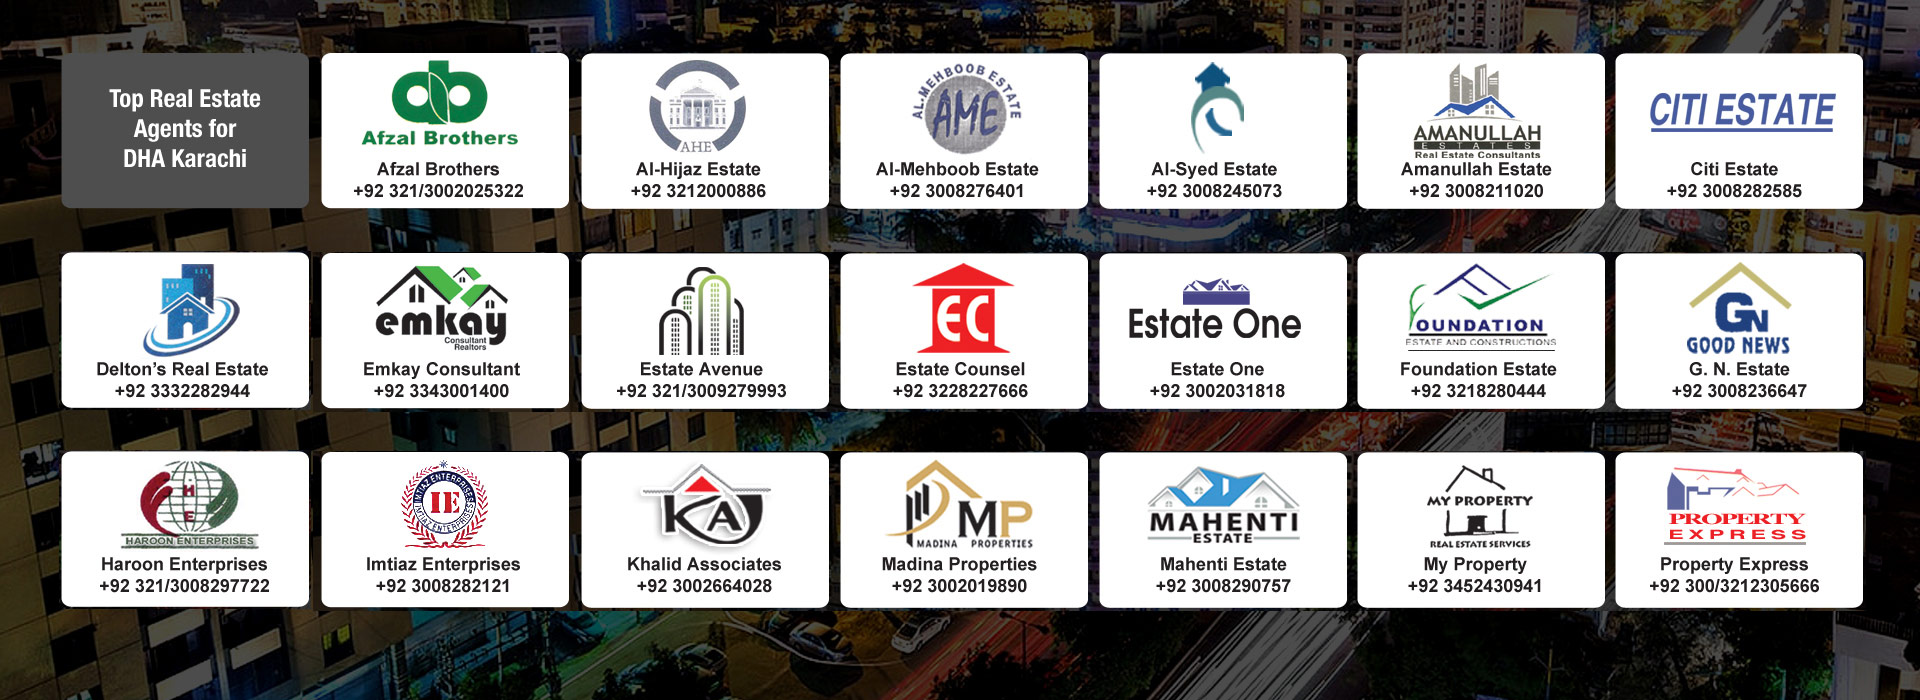 All Pakistan Real Estate Directory - PakRealEstate com